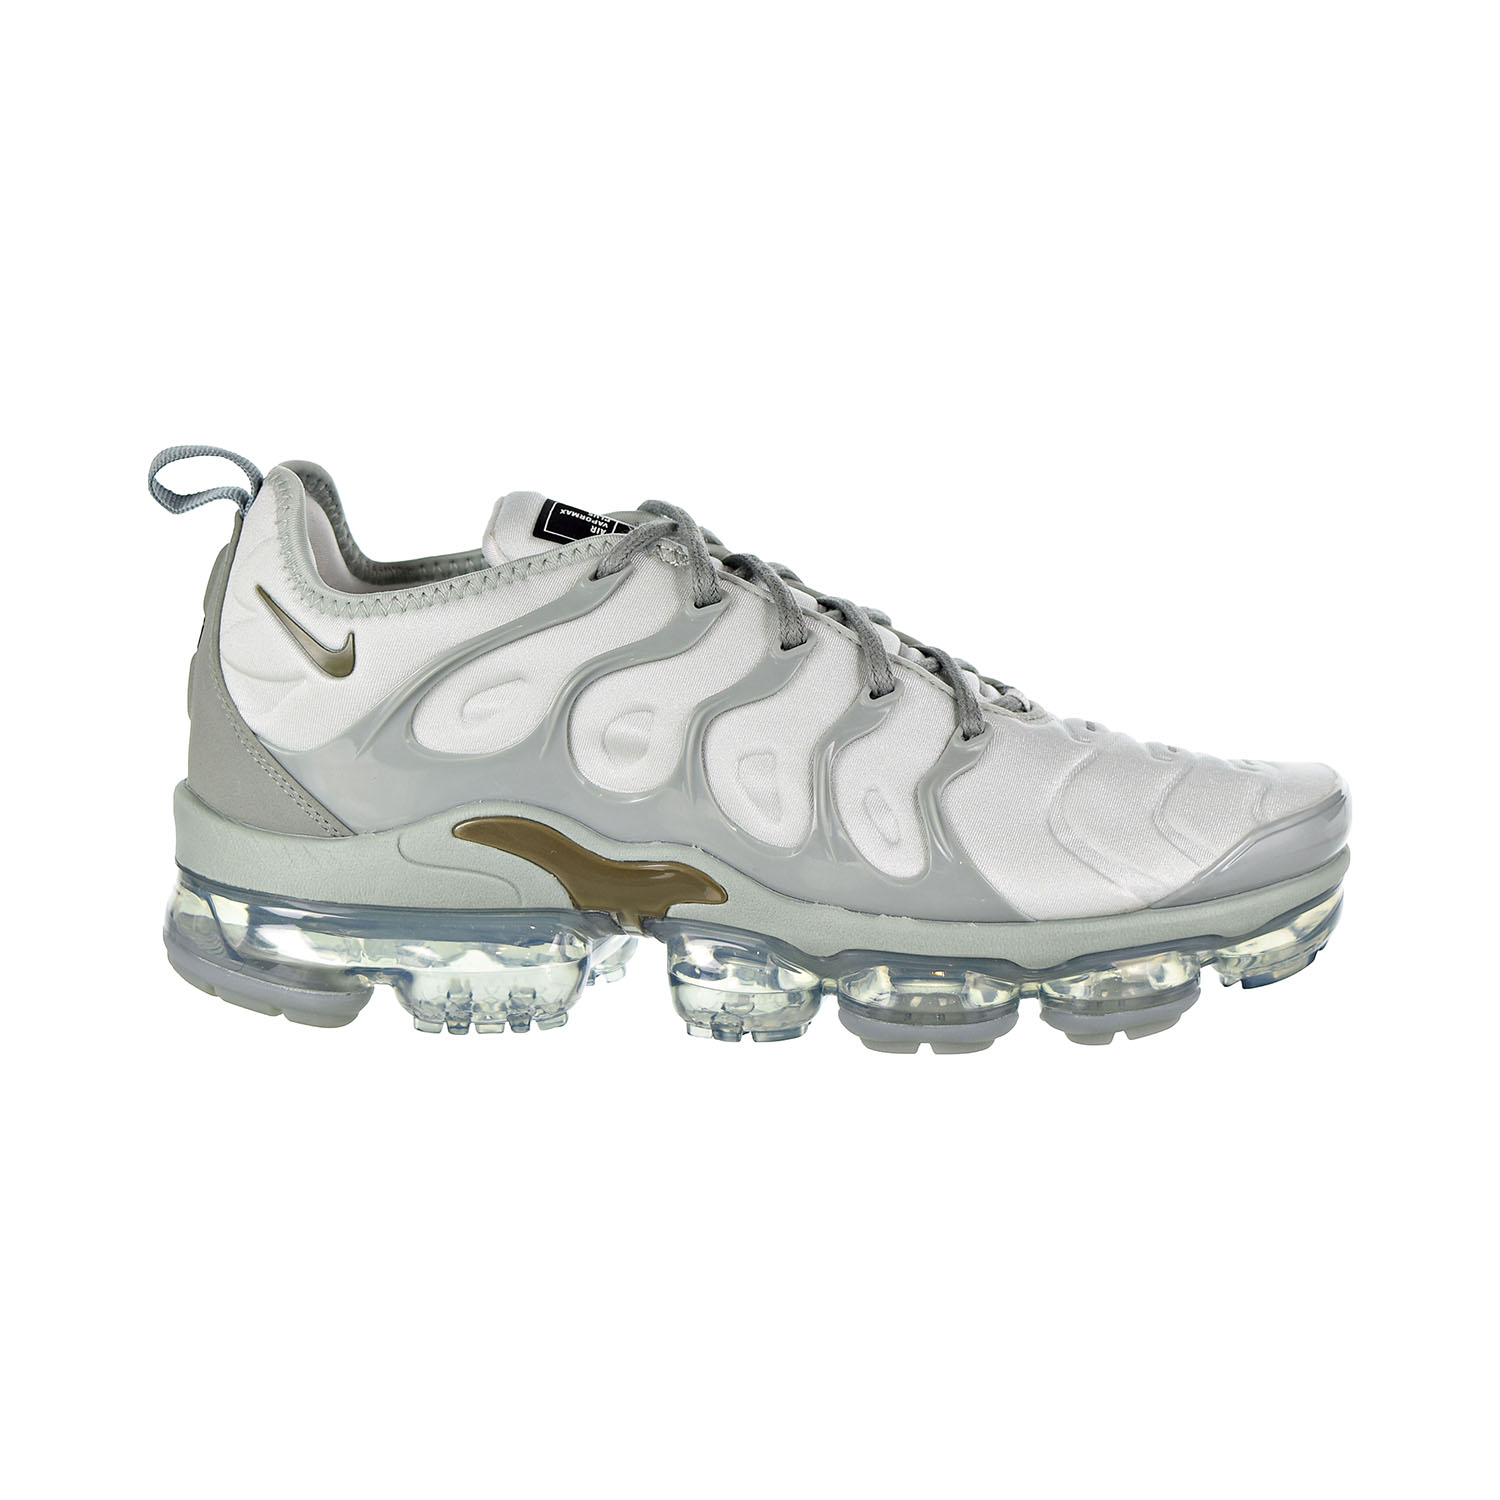 eed295ac7b797 Details about Nike Air Vapormax Plus Women s Shoes Light Silver Medium  Olive AO4550-006